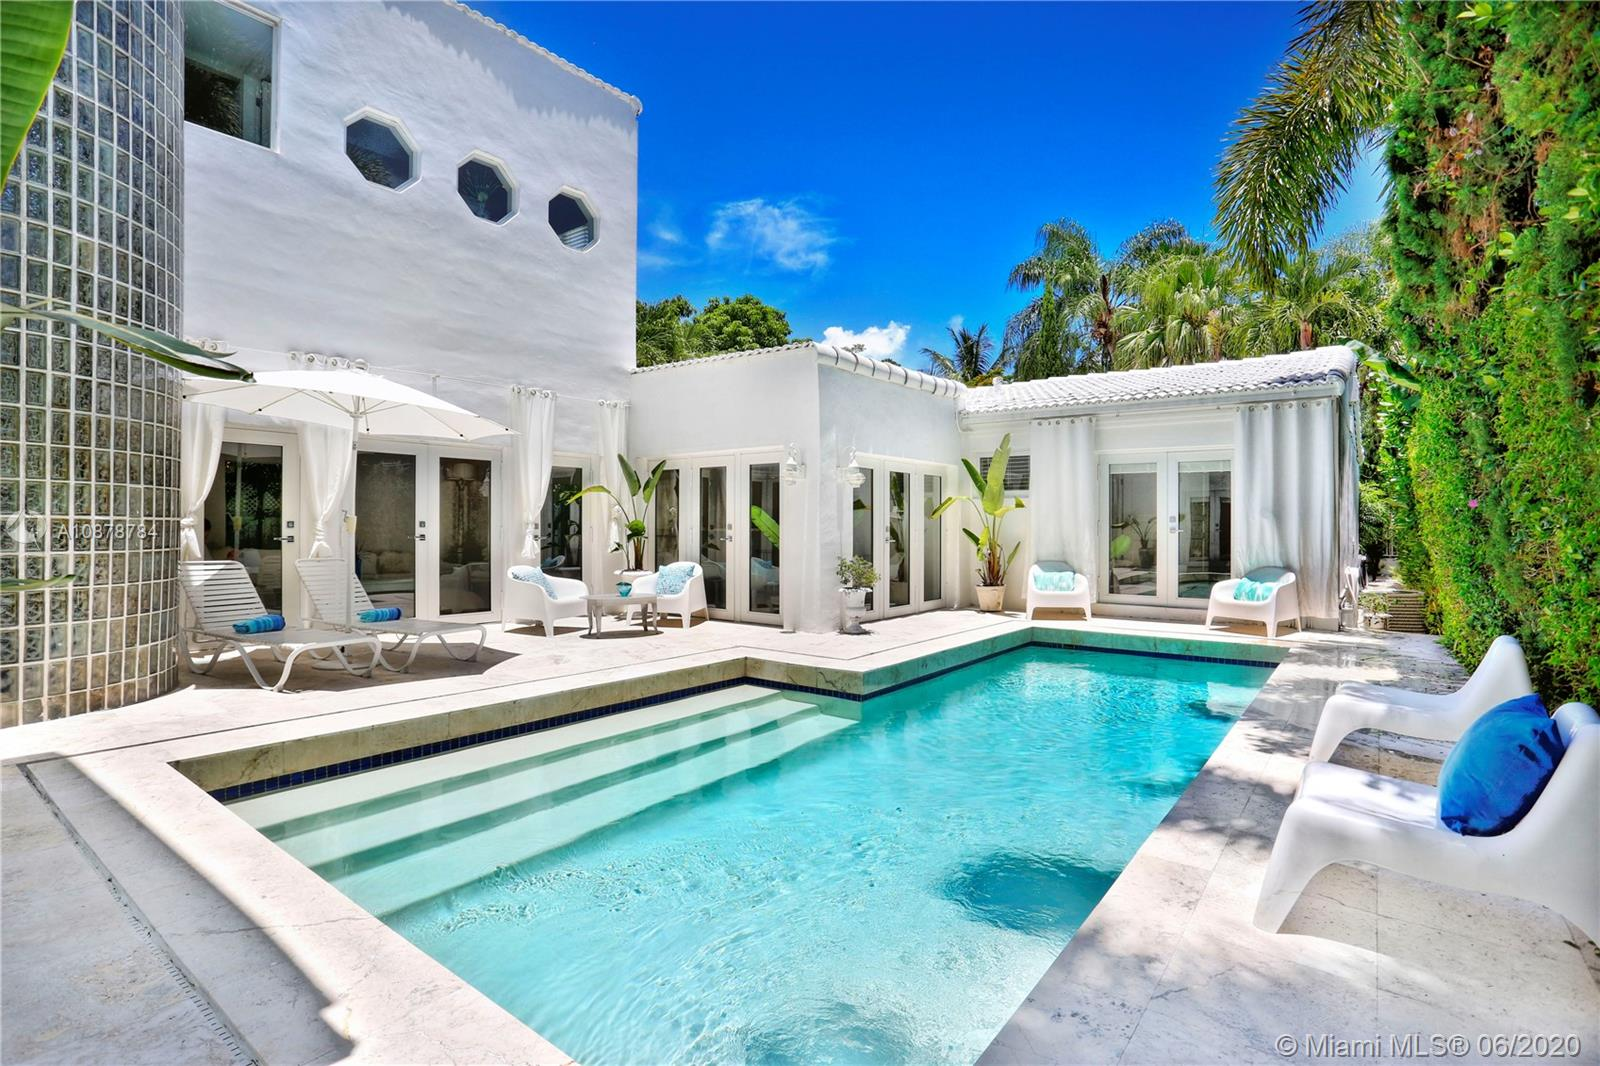 Ultra-private & serene retreat on a quiet tree-lined street in prime South Grove location. Stunning, light-filled living spaces w/ high ceilings & white-washed oak flooring. French doors throughout, overlook tranquil pool & lush tropical gardens & terraces that surround the home. A white color-palette provides the ideal backdrop for art collections. Renovated, custom kitchen opens to adjacent breakfast area. Formal living, dining & family rooms as well as two master suites (one up & one down) each w/ private sitting areas and luxurious baths w/ soaking tubs. Gated, covered parking for 2 cars + guest parking for 3+ cars. Walk to the Grove village center's, boutiques, cafes and bayfront  parks & marinas. Also just minutes to downtown Coral Gables & South Miami world-class shopping & dining.